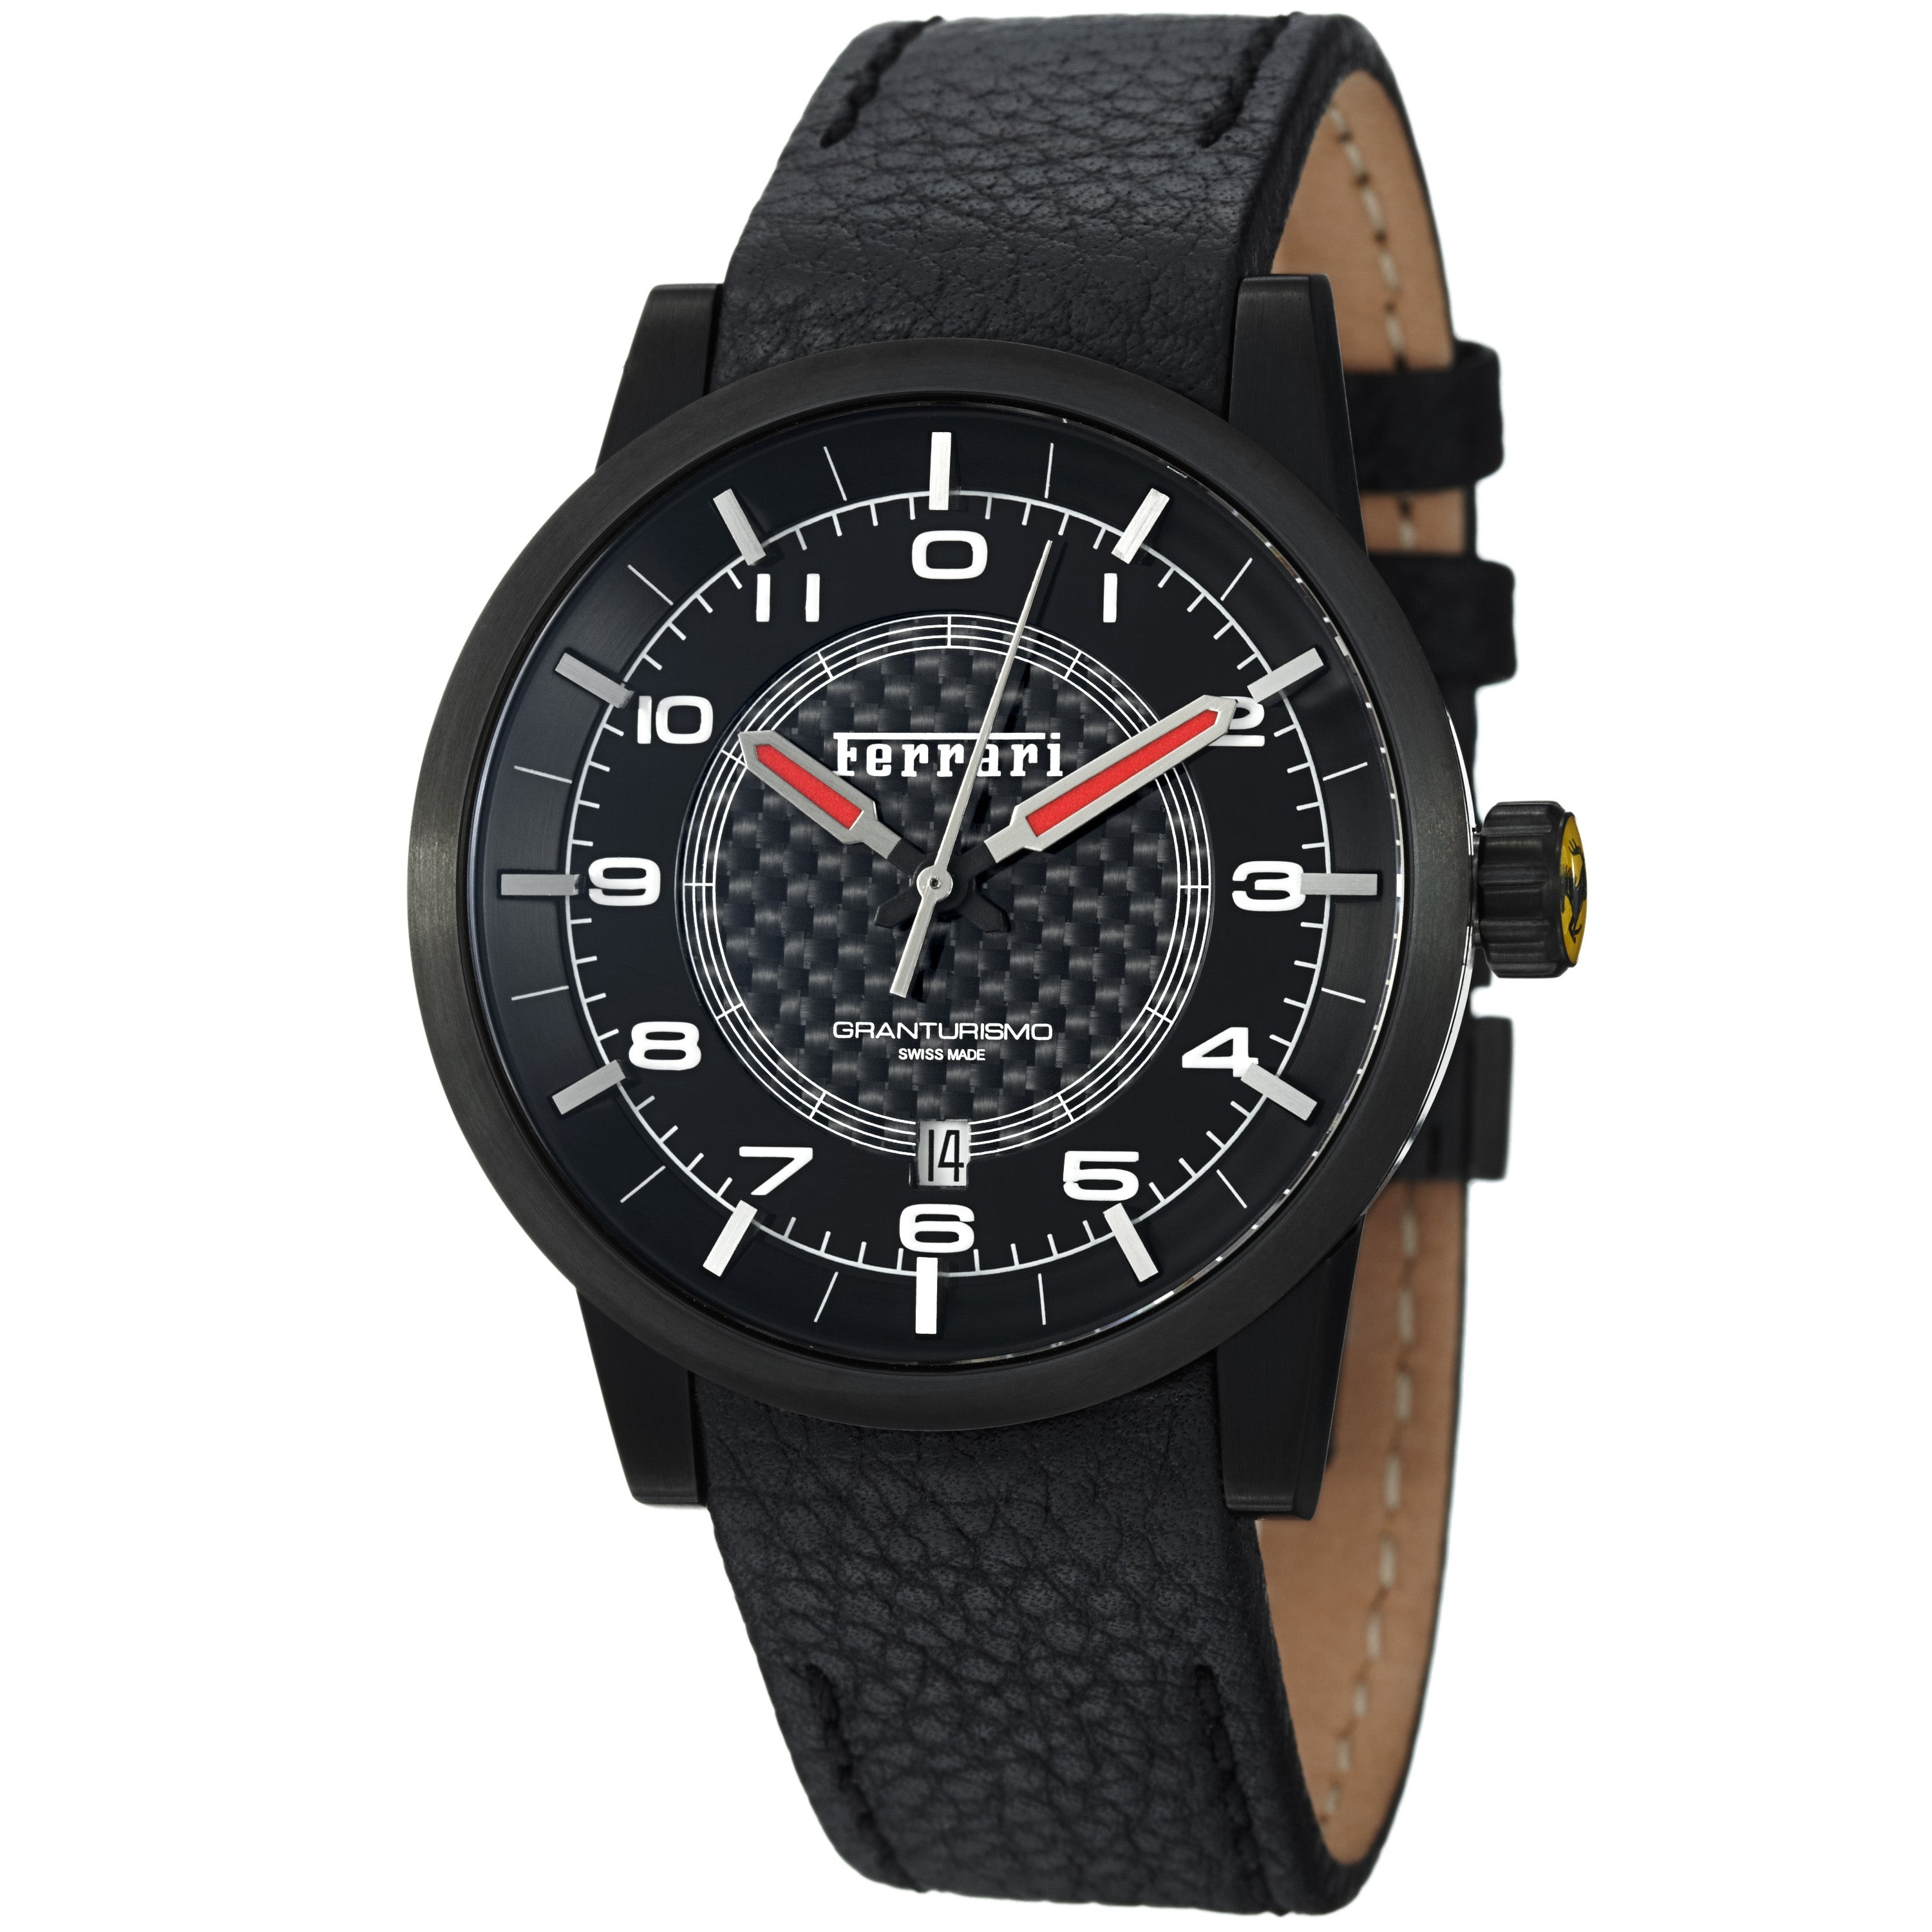 s watches ferrari fashion premium watch speciale analog men company carrying sale retail new for